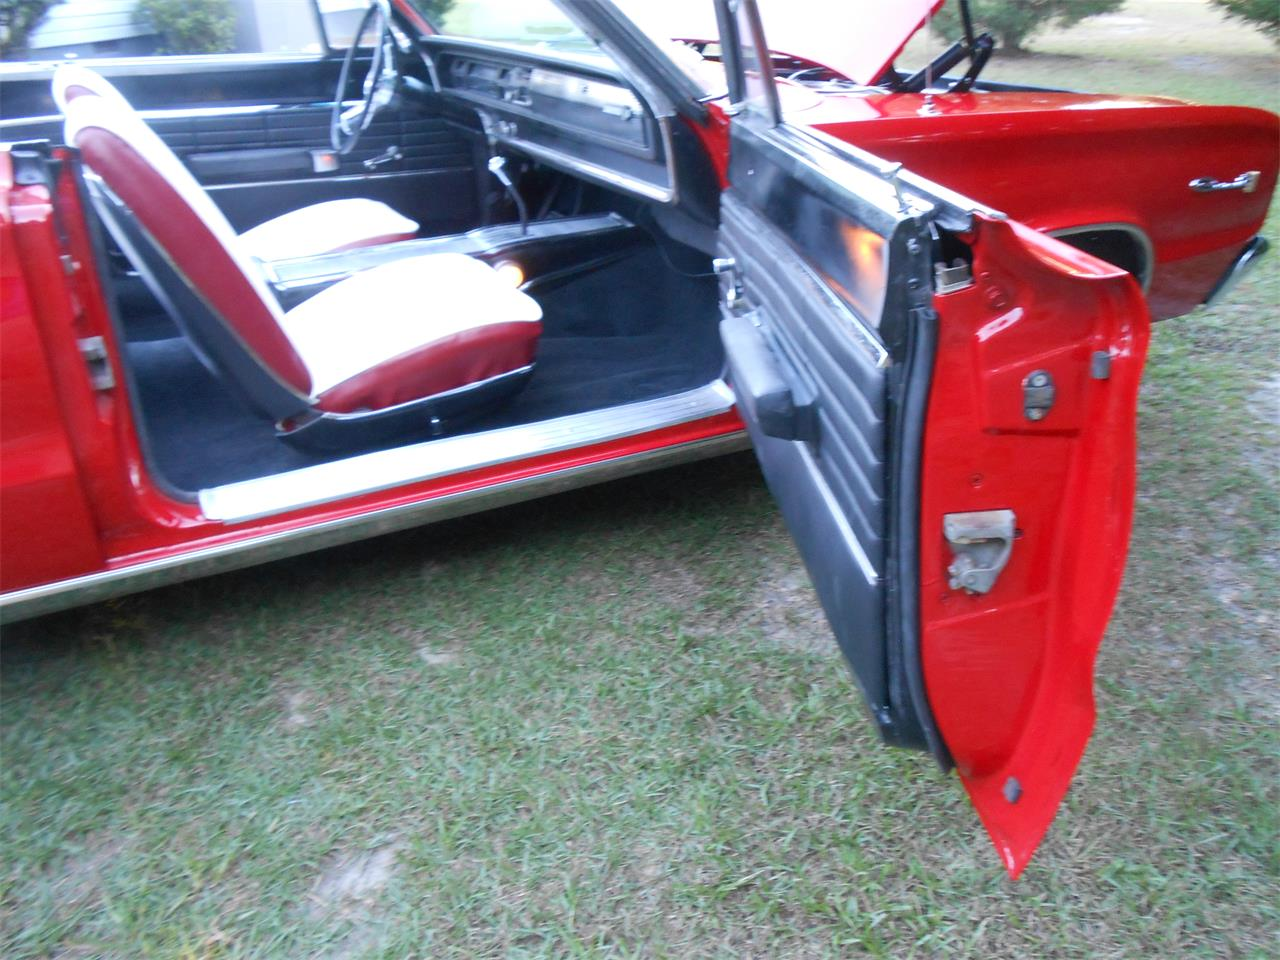 Large Picture of 1966 Dodge Coronet 500 located in South Carolina - $30,000.00 Offered by a Private Seller - MR9U